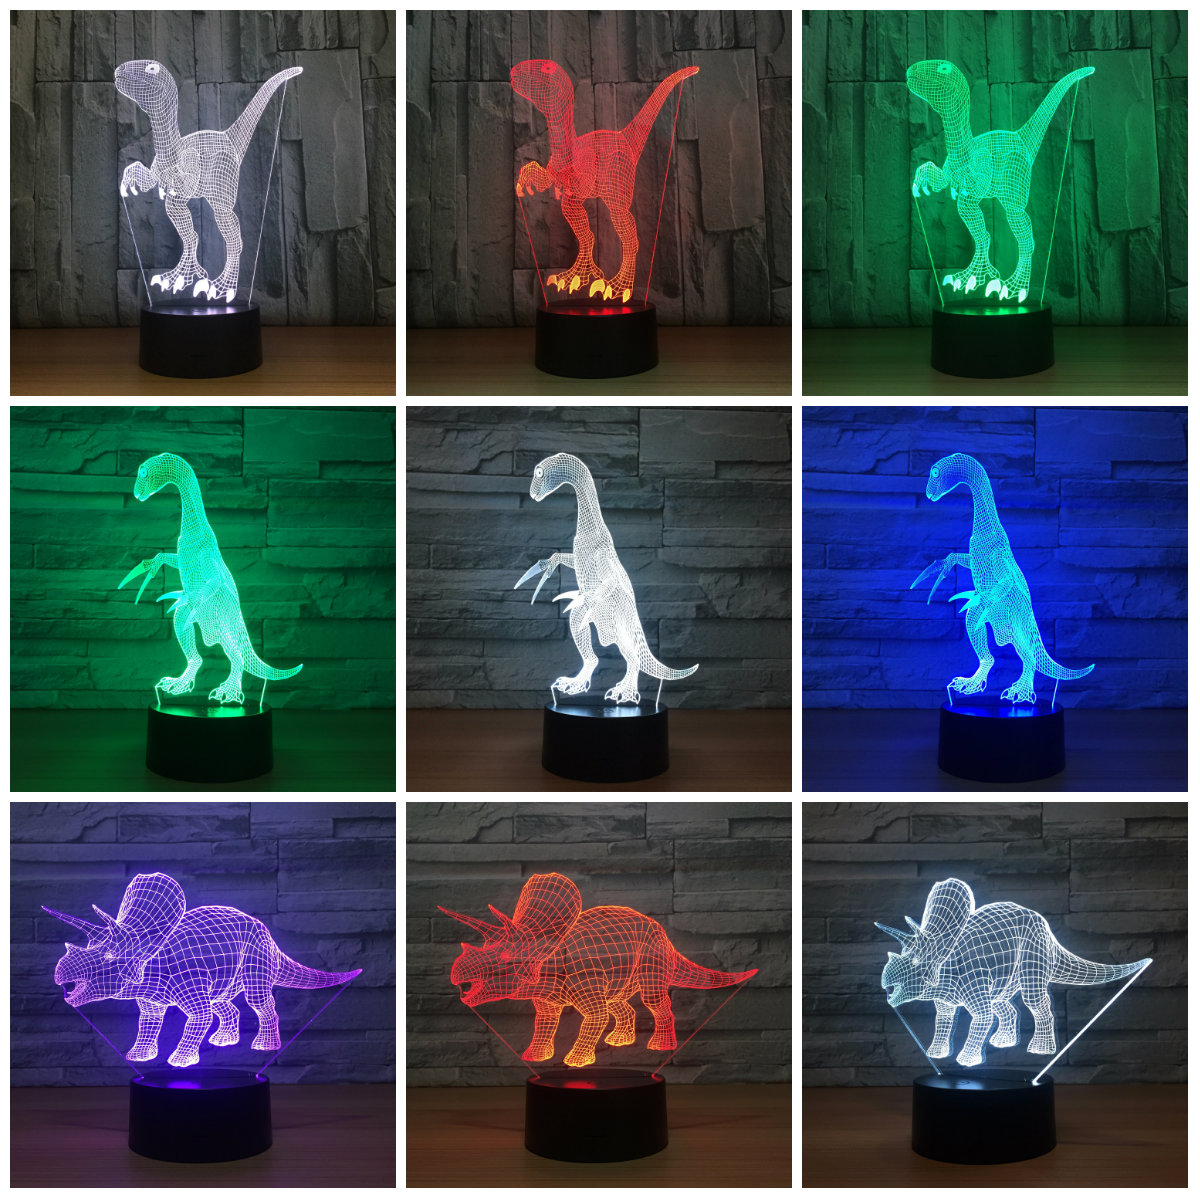 Novelty Touch Switch Desk Light Night Light Colorful USB LED Table Acrylic Lamp 3D Illusion Dinosaur For Home Decor IY803211 novelty 3d minions night light led table lamp touch desk lighting colorful for child baby gift birthday party bedroom home decor